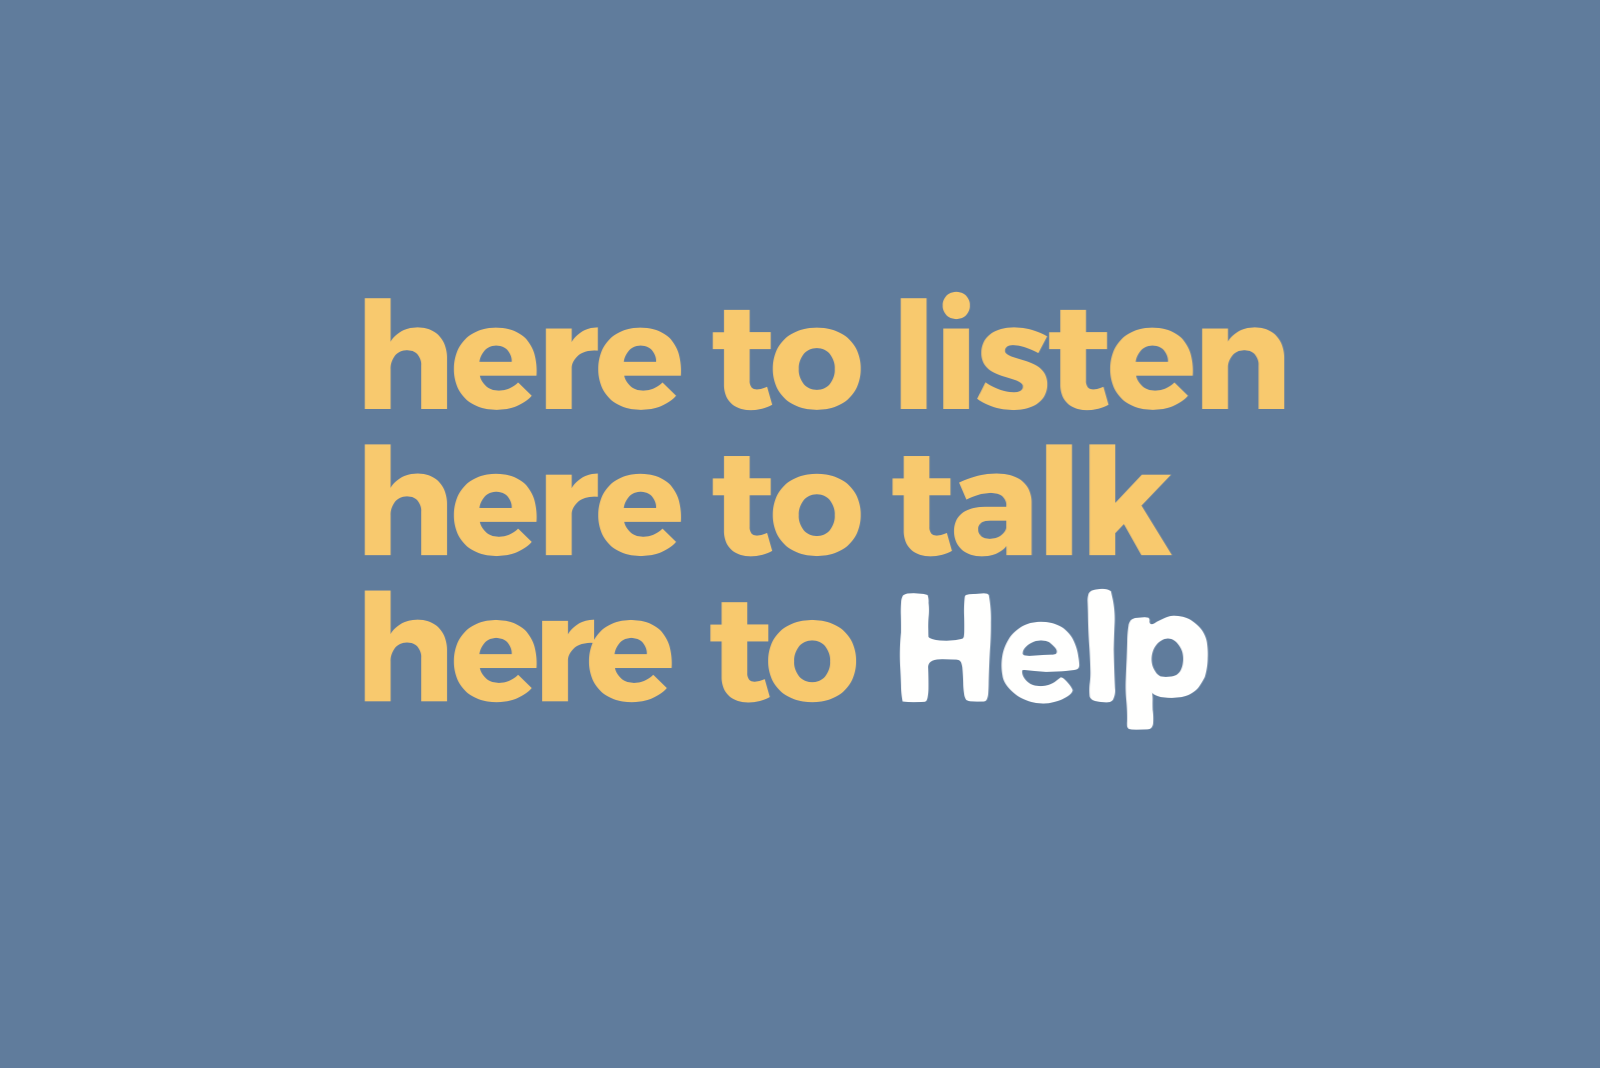 here to listen here to talk here to Help